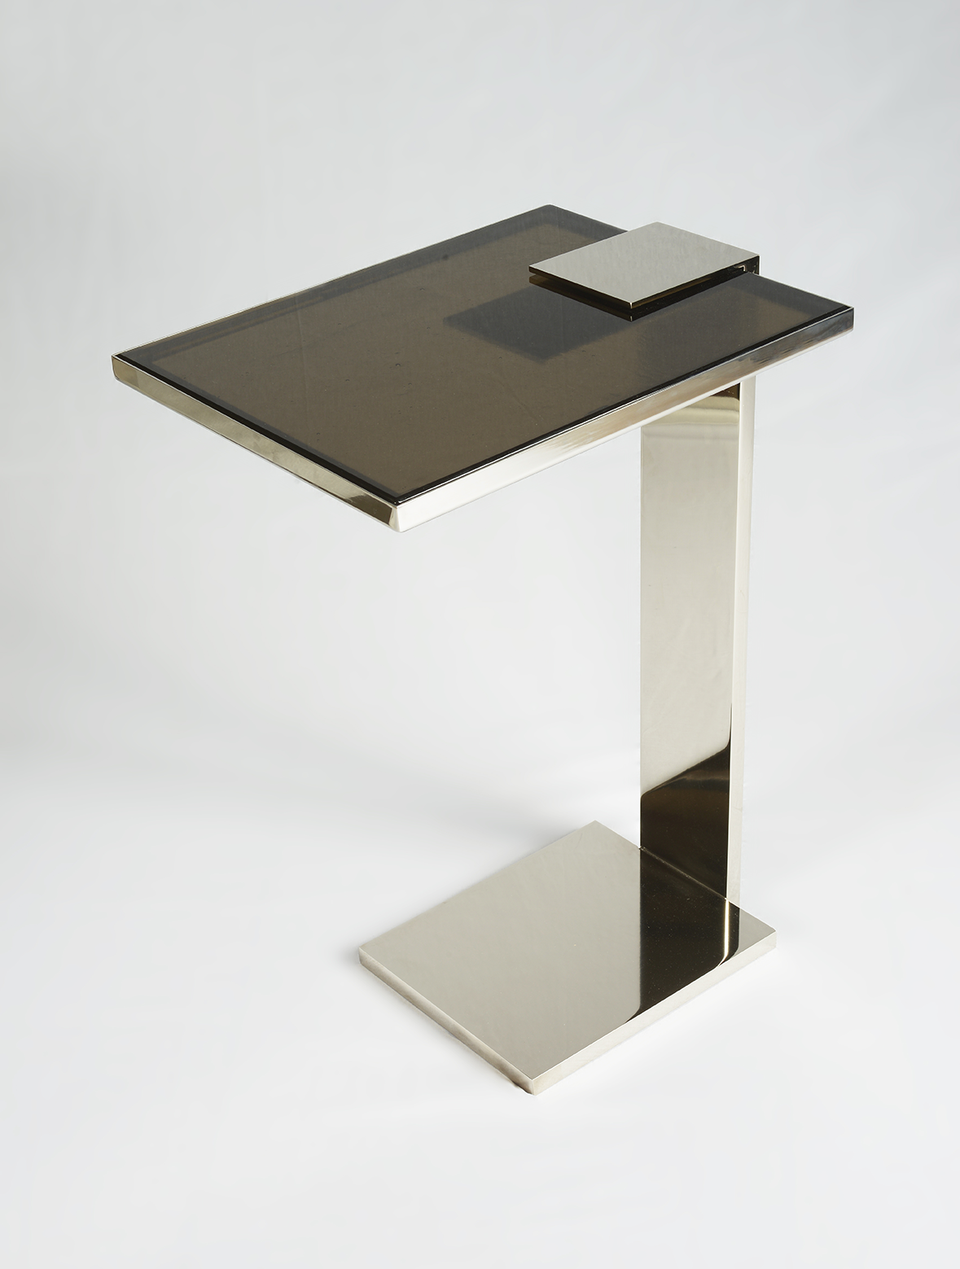 Petite Table De Bureau Dering Hall Buy Poli Side Table Sofa Tables Tables